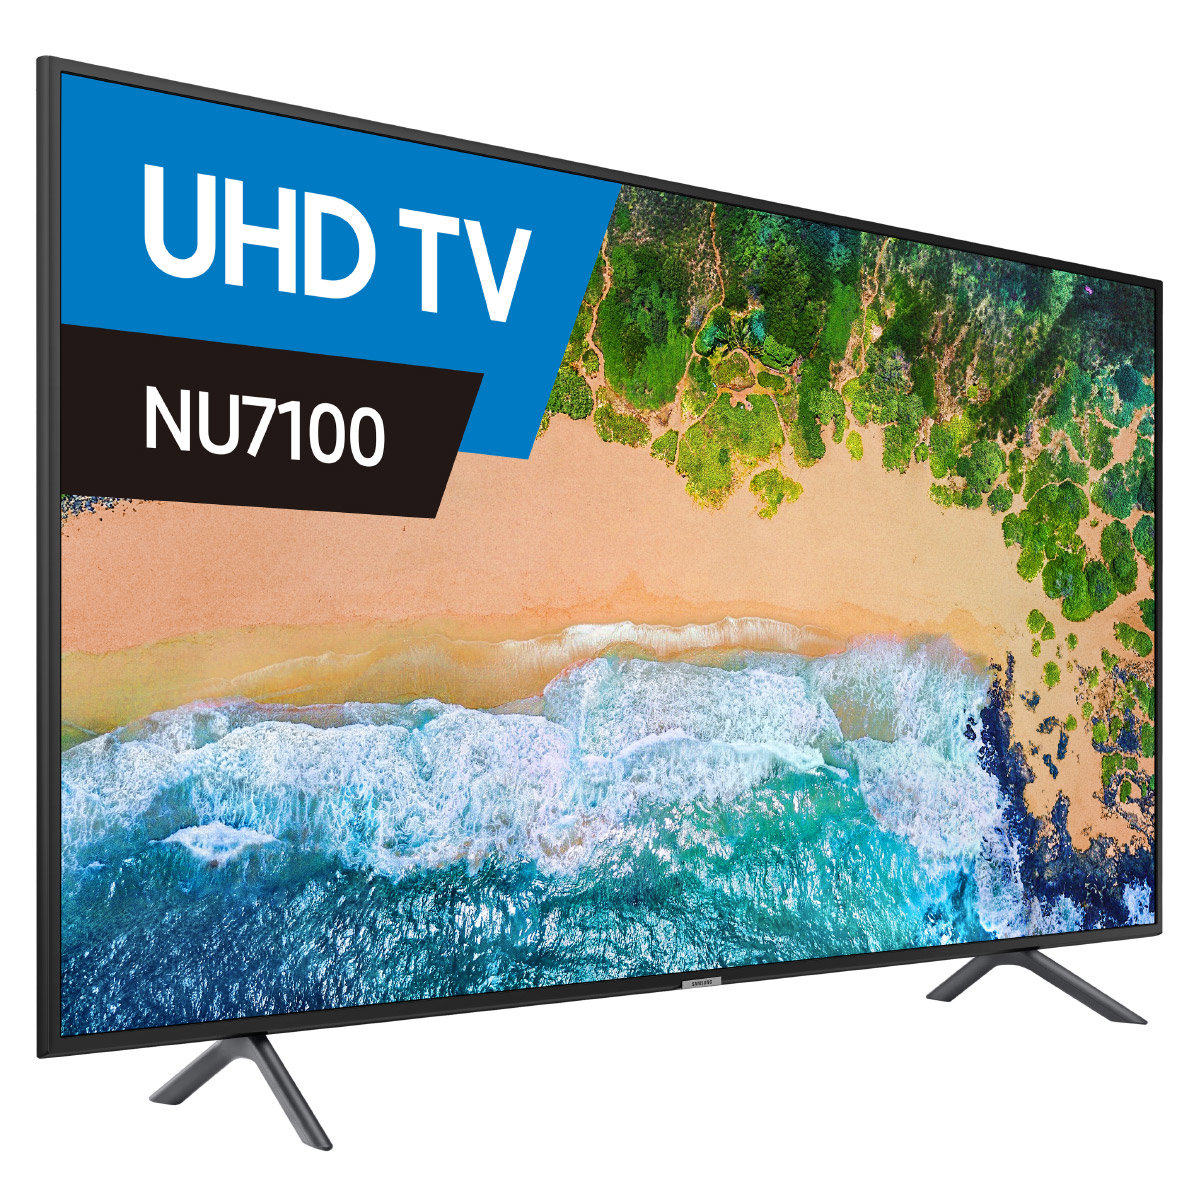 4aa98642b4c Samsung UA75NU7100 75 Inch 190cm Smart 4K Ultra HD LED LCD TV ...